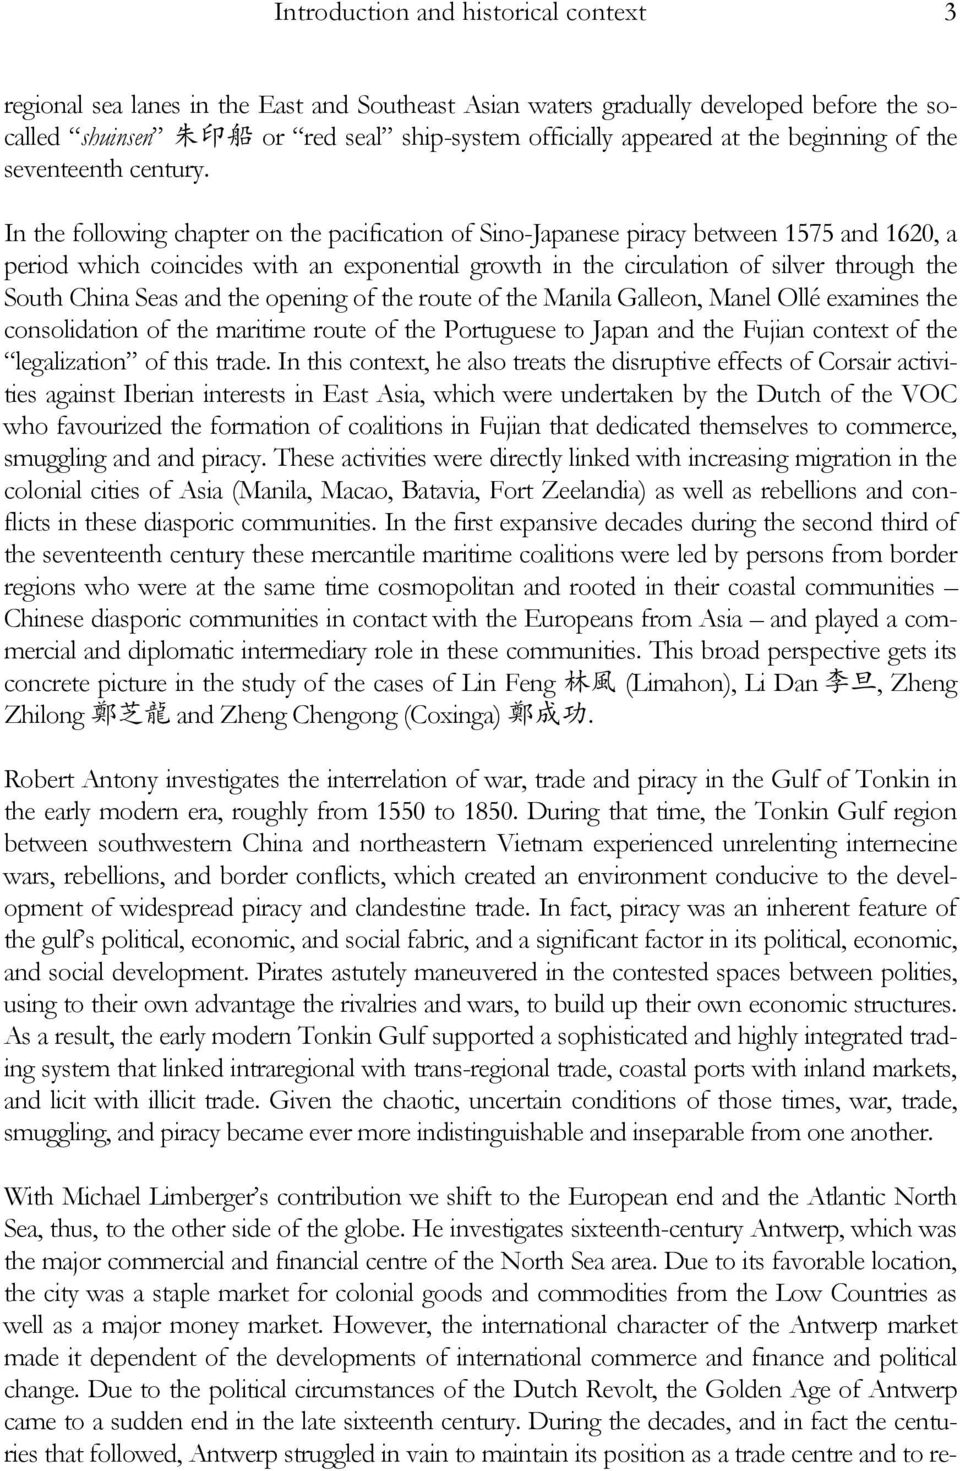 In the following chapter on the pacification of Sino-Japanese piracy between 1575 and 1620, a period which coincides with an exponential growth in the circulation of silver through the South China